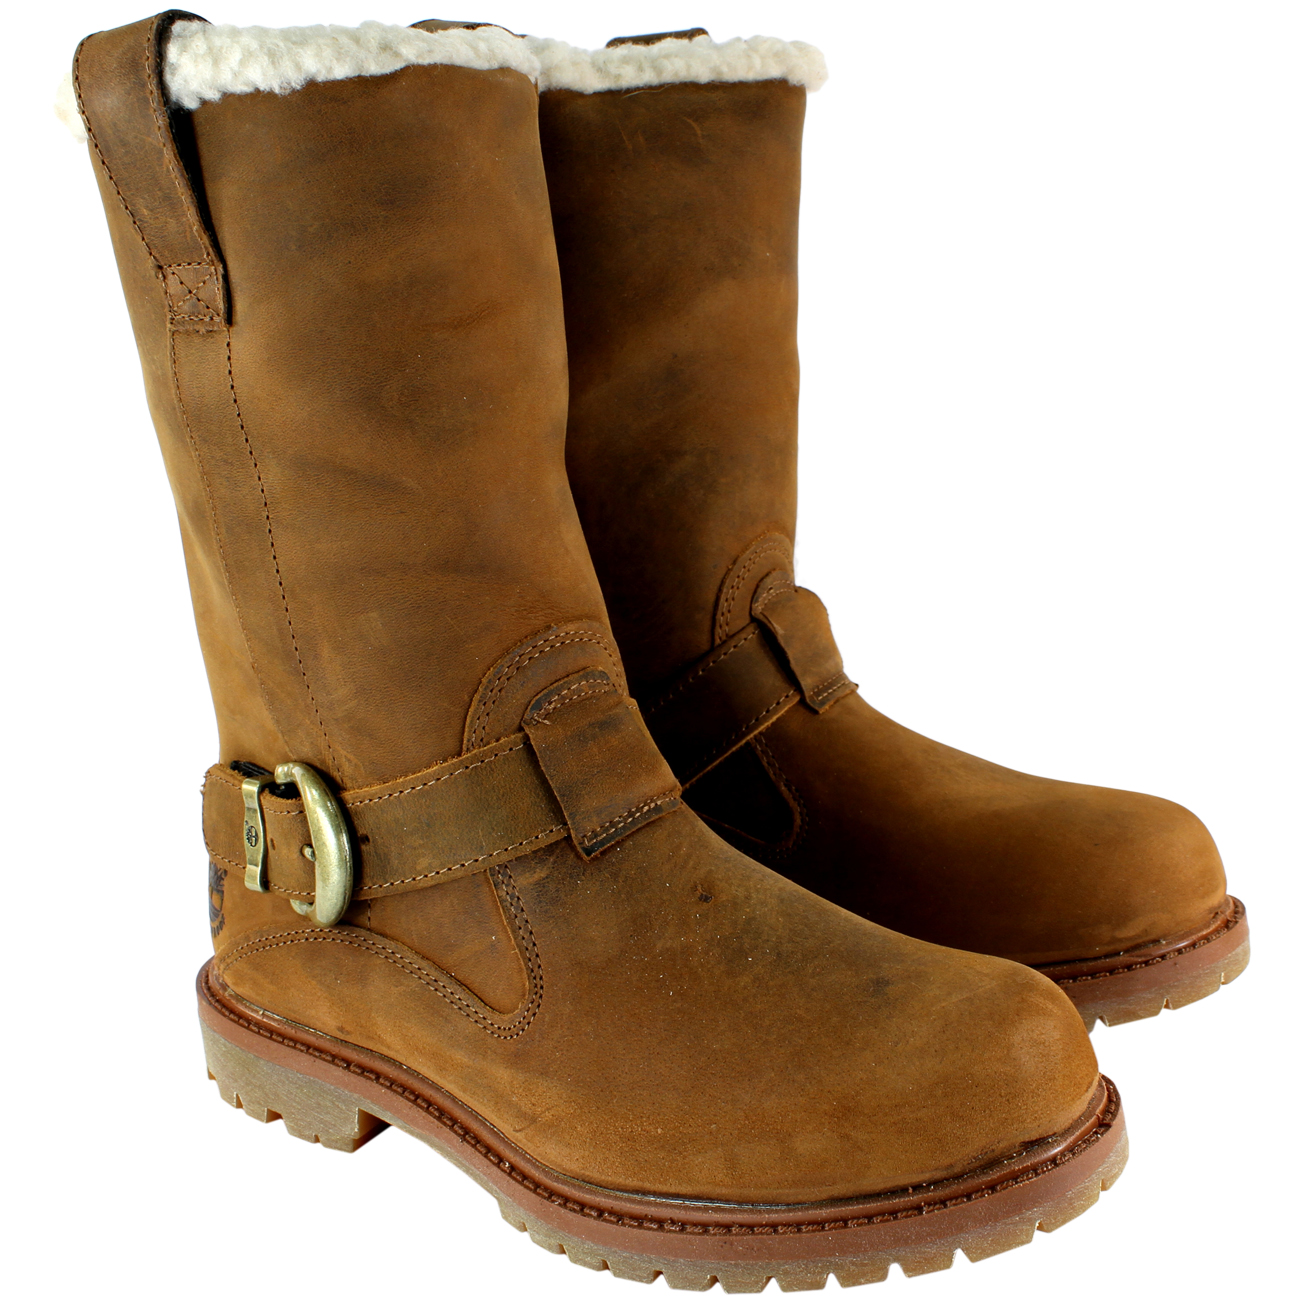 Timberland Nellie Pull On Mid Calf Boots